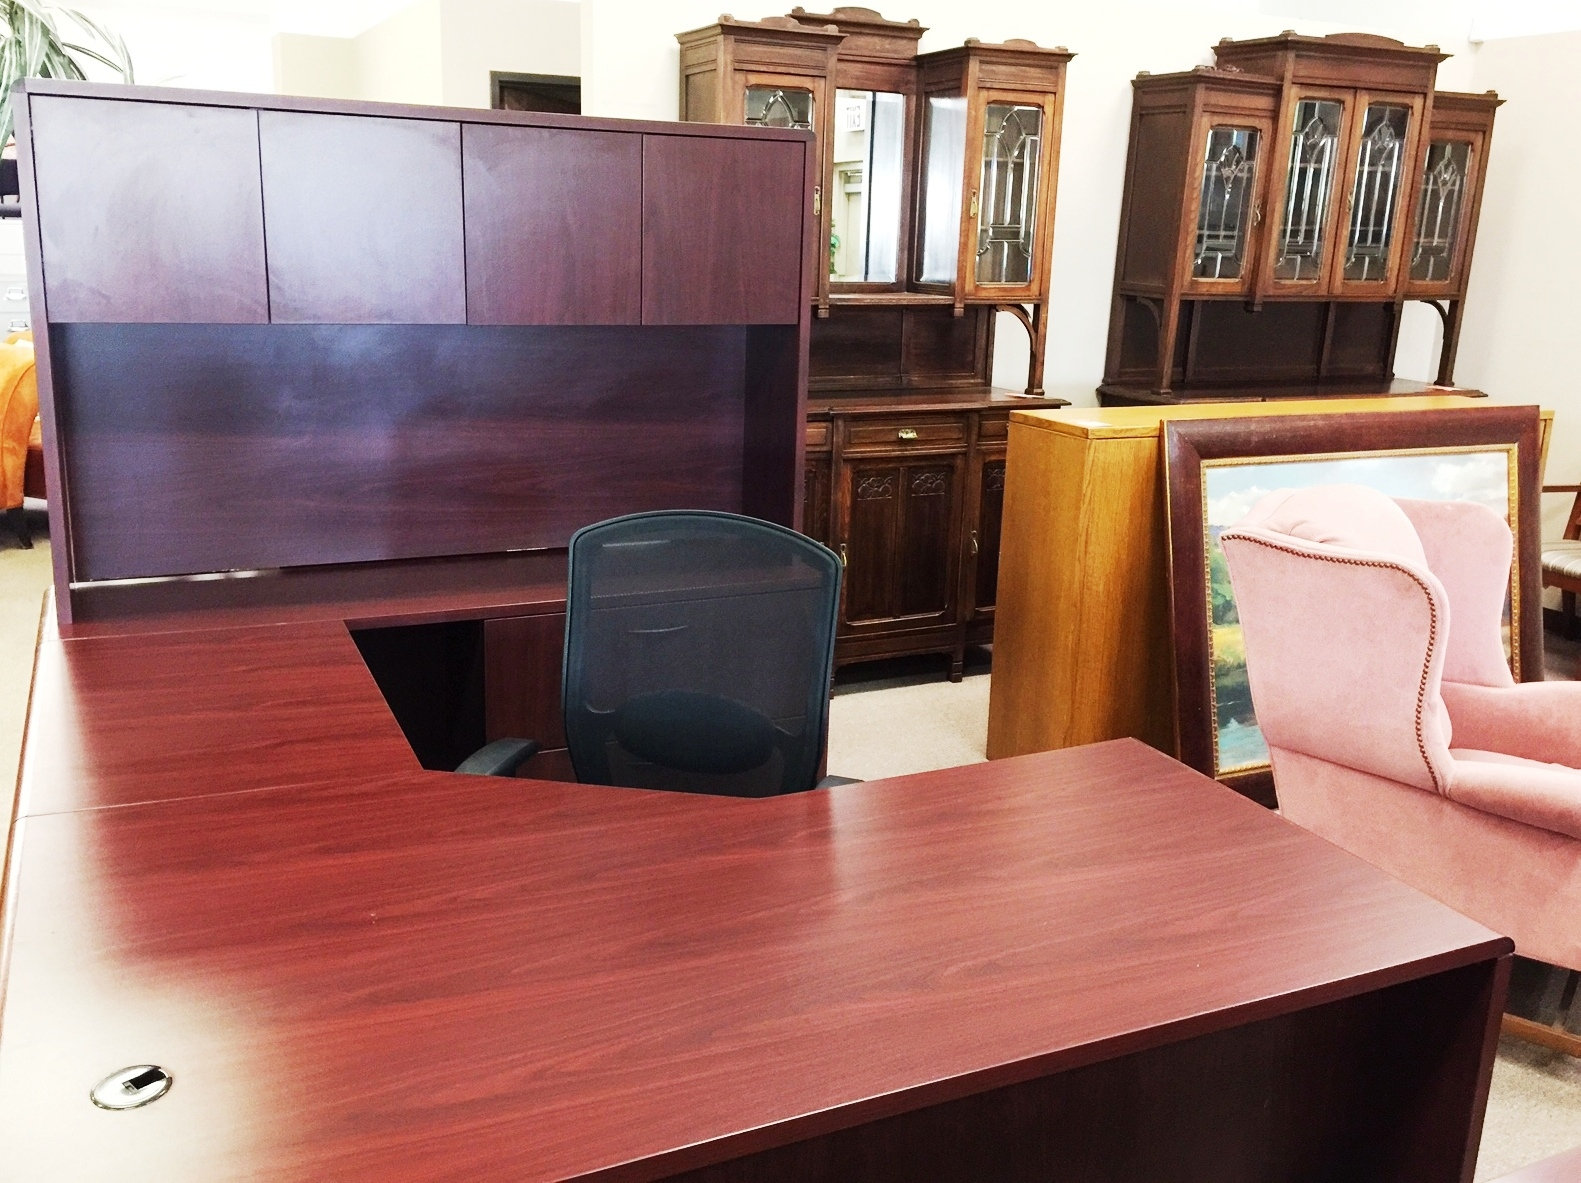 Office Furniture Near Me Of Office Furniture Outlet Coupons Near Me In Corona 8coupons